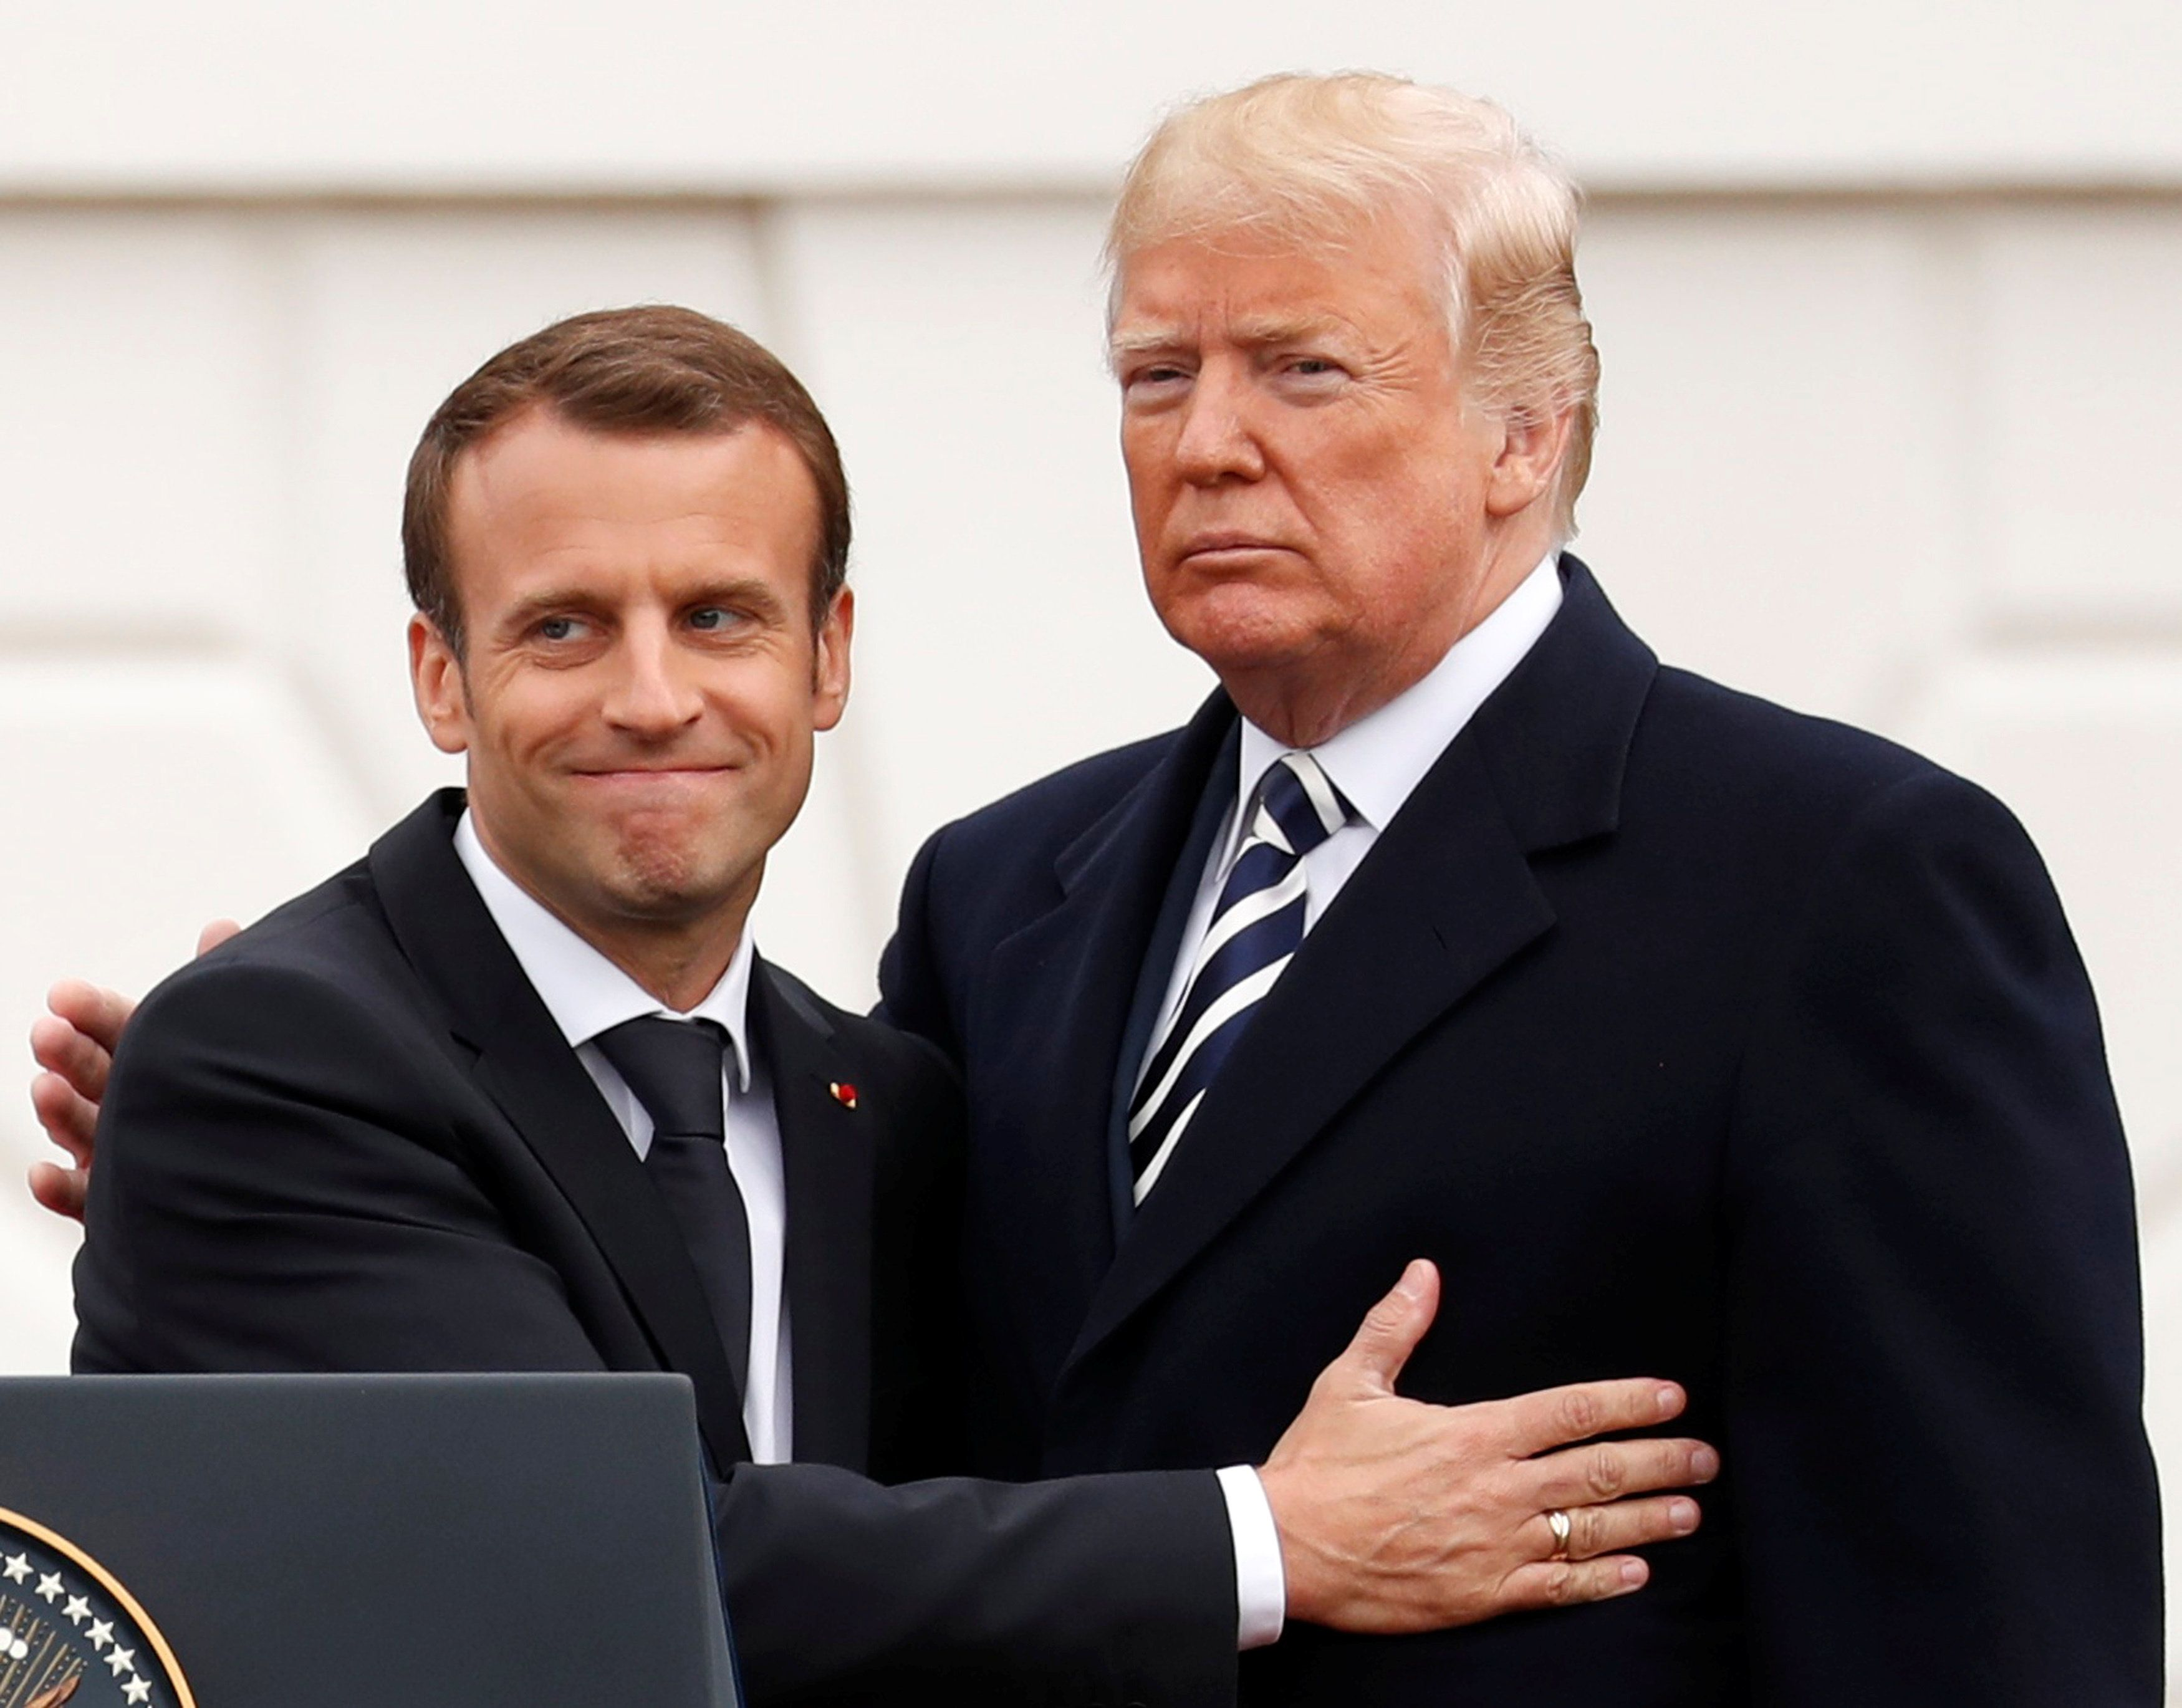 France's Emmanuel Macron Throws Down Trump Twitter Gauntlet: G7 Can Be G6